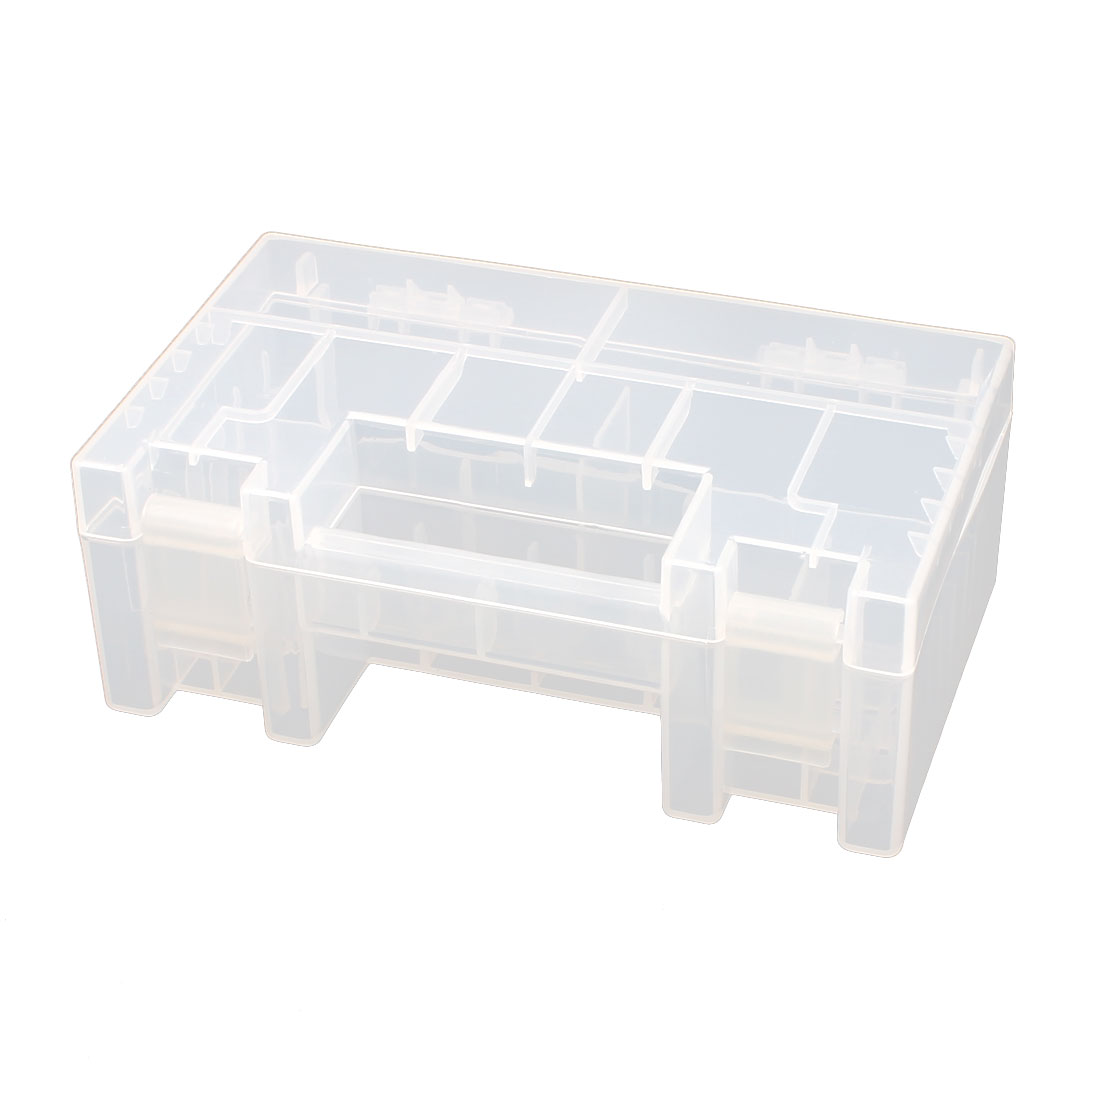 Portable Case Holder Storage Box Container for 20 x AA/14 x AAA Battery